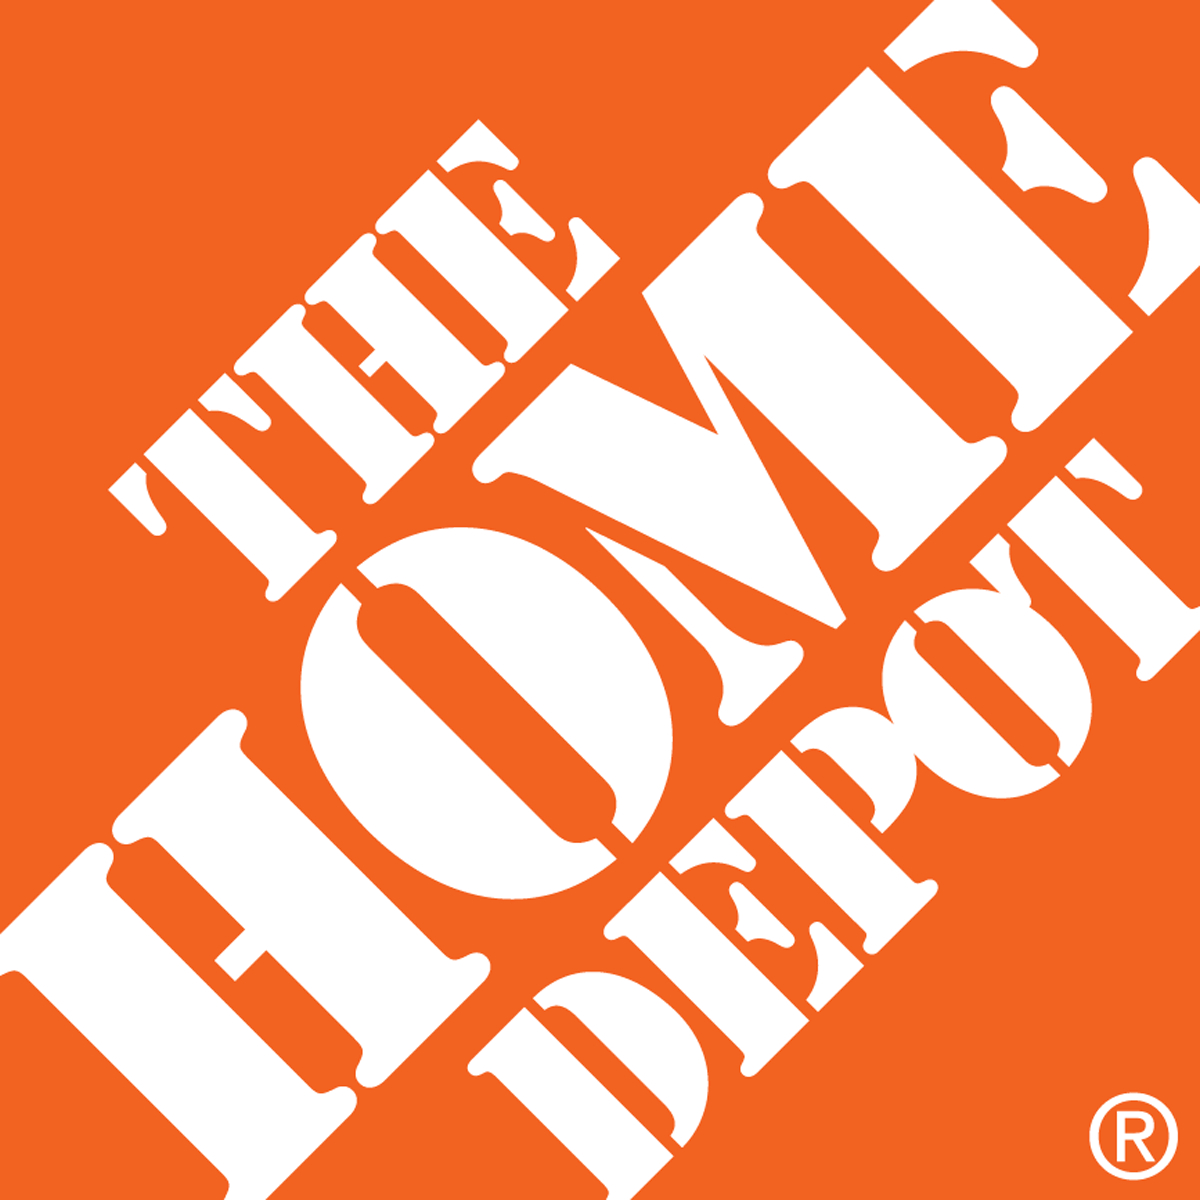 15% Off Home Depot Coupons, Promo Codes & Deals 2019 - Savings - Free Printable Home Depot Coupons